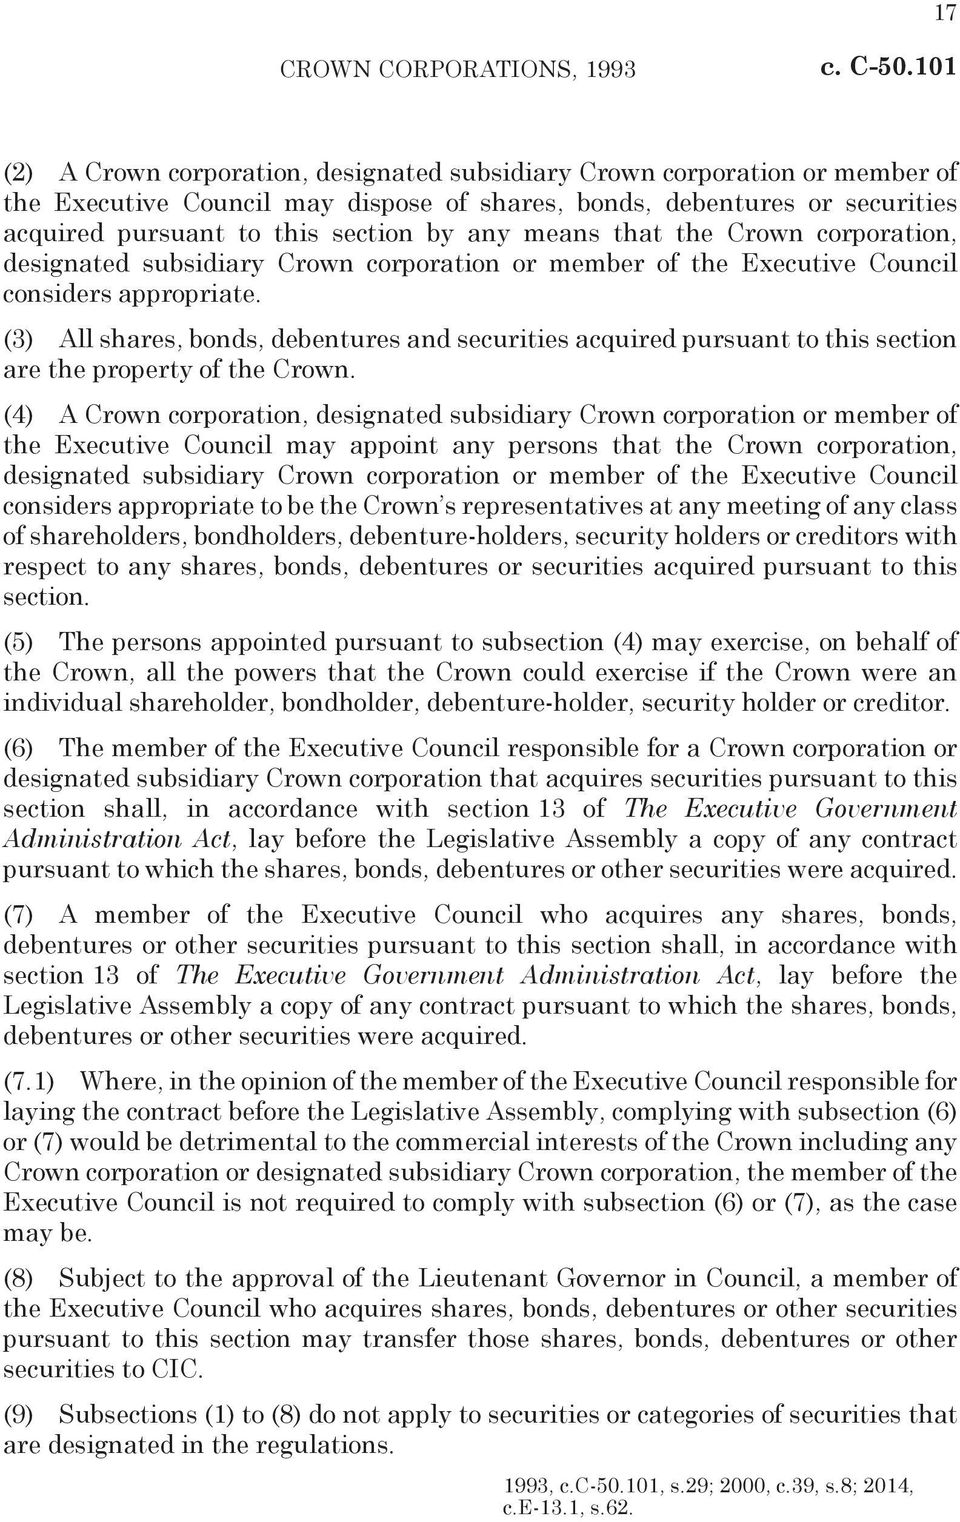 (3) All shares, bonds, debentures and securities acquired pursuant to this section are the property of the Crown.